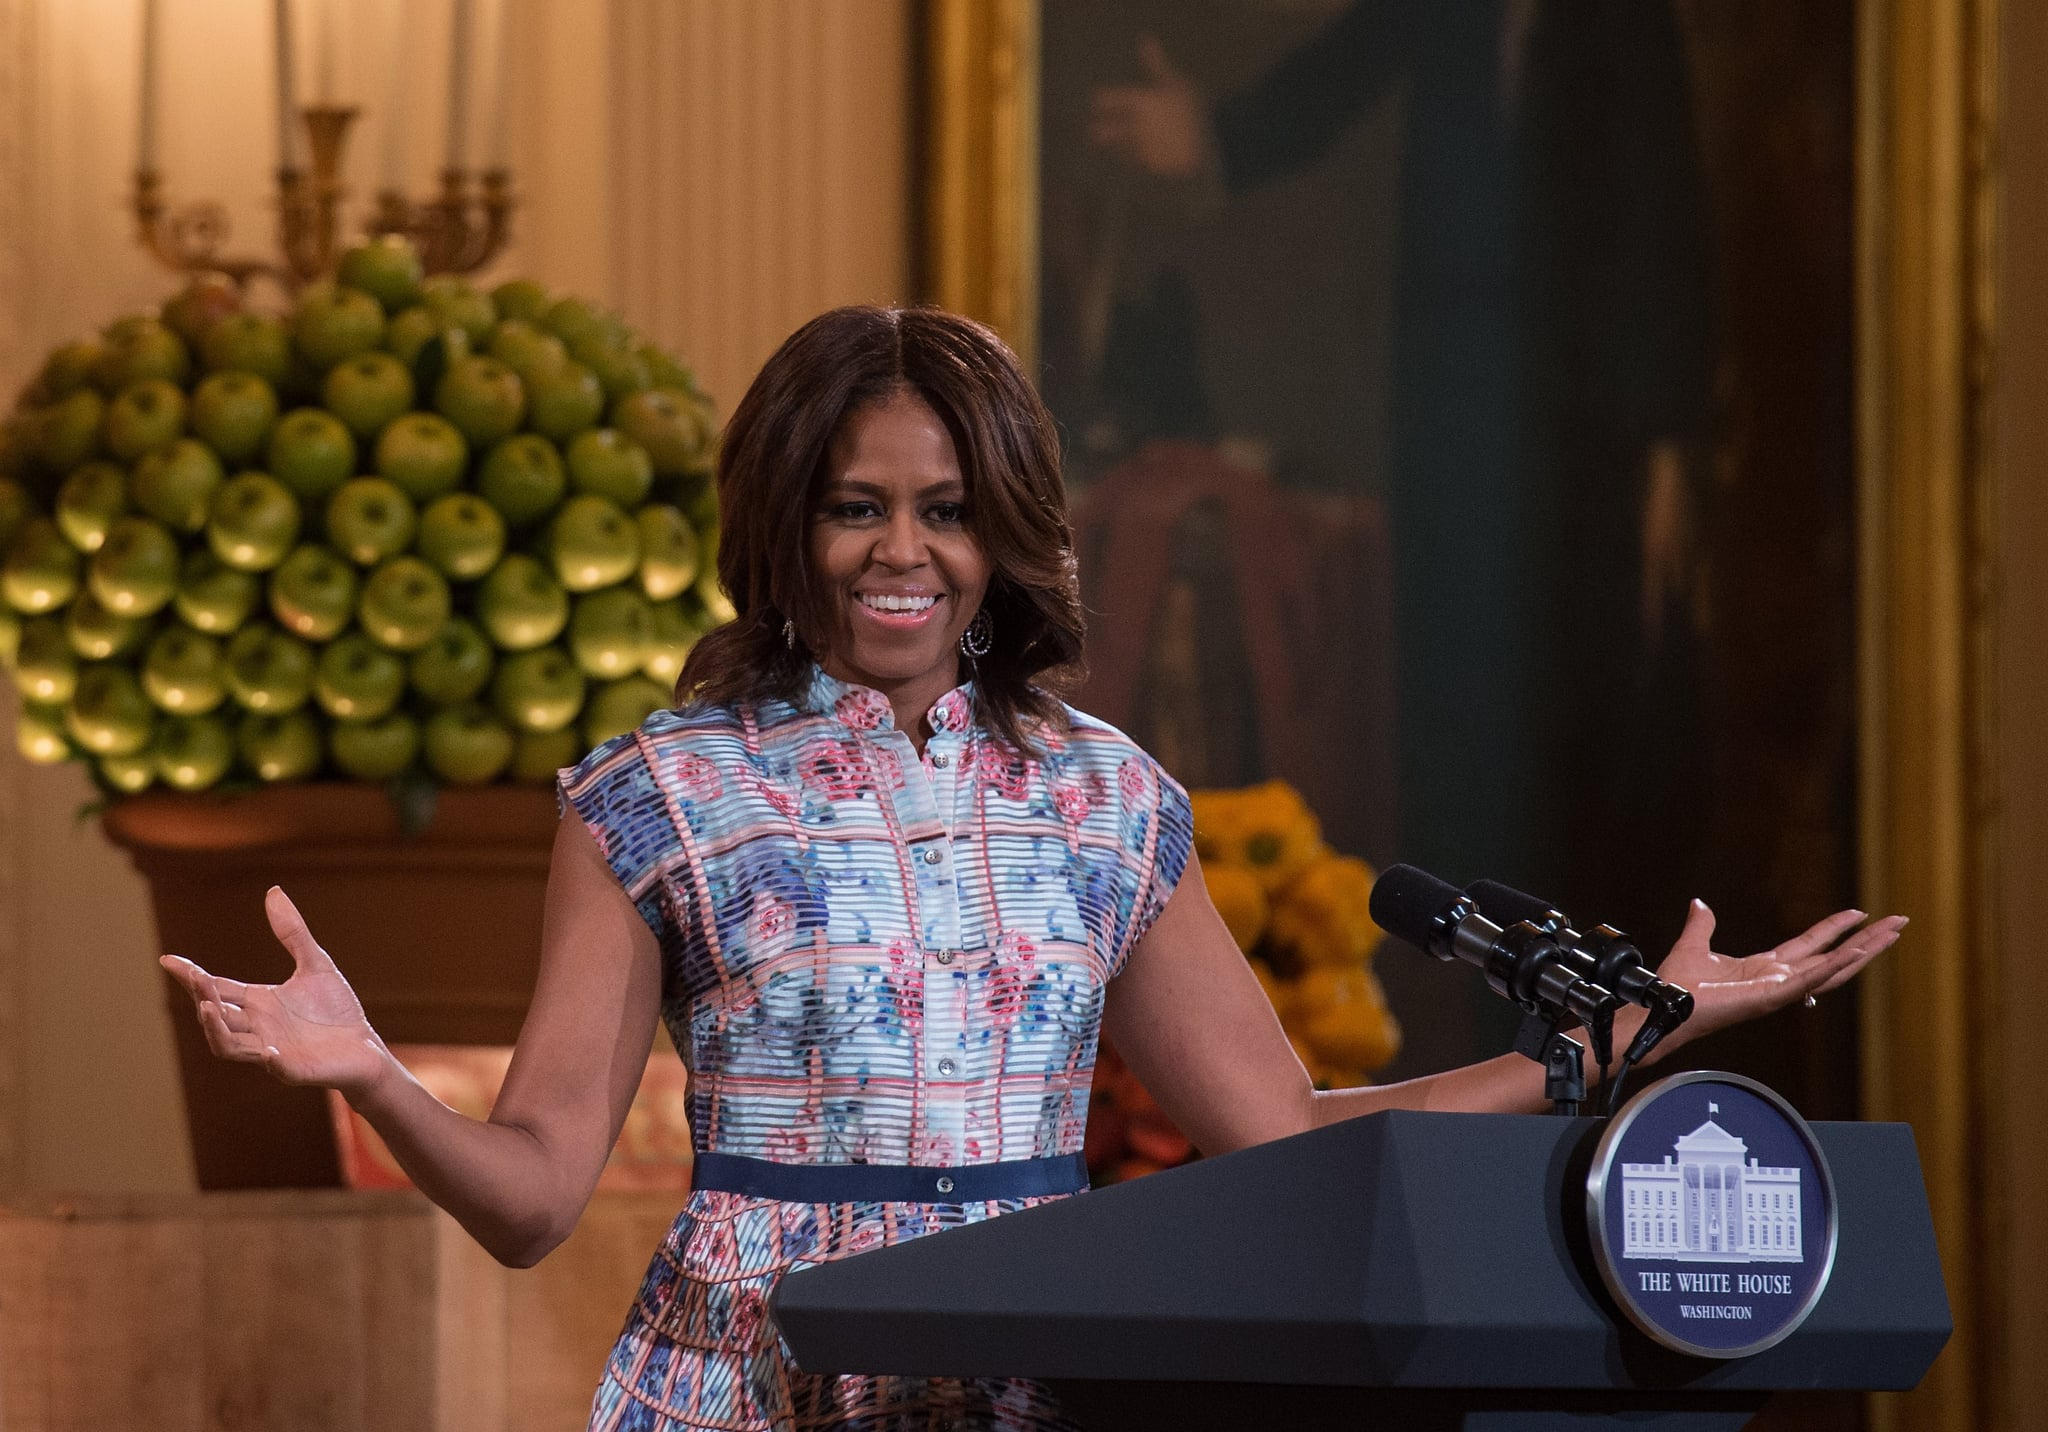 Michelle wore this ultramodern, fun, and floral Mary Katrantzou number to the Kids' State Dinner, accessorizing with simple, crystal-embellished dangling earrings.